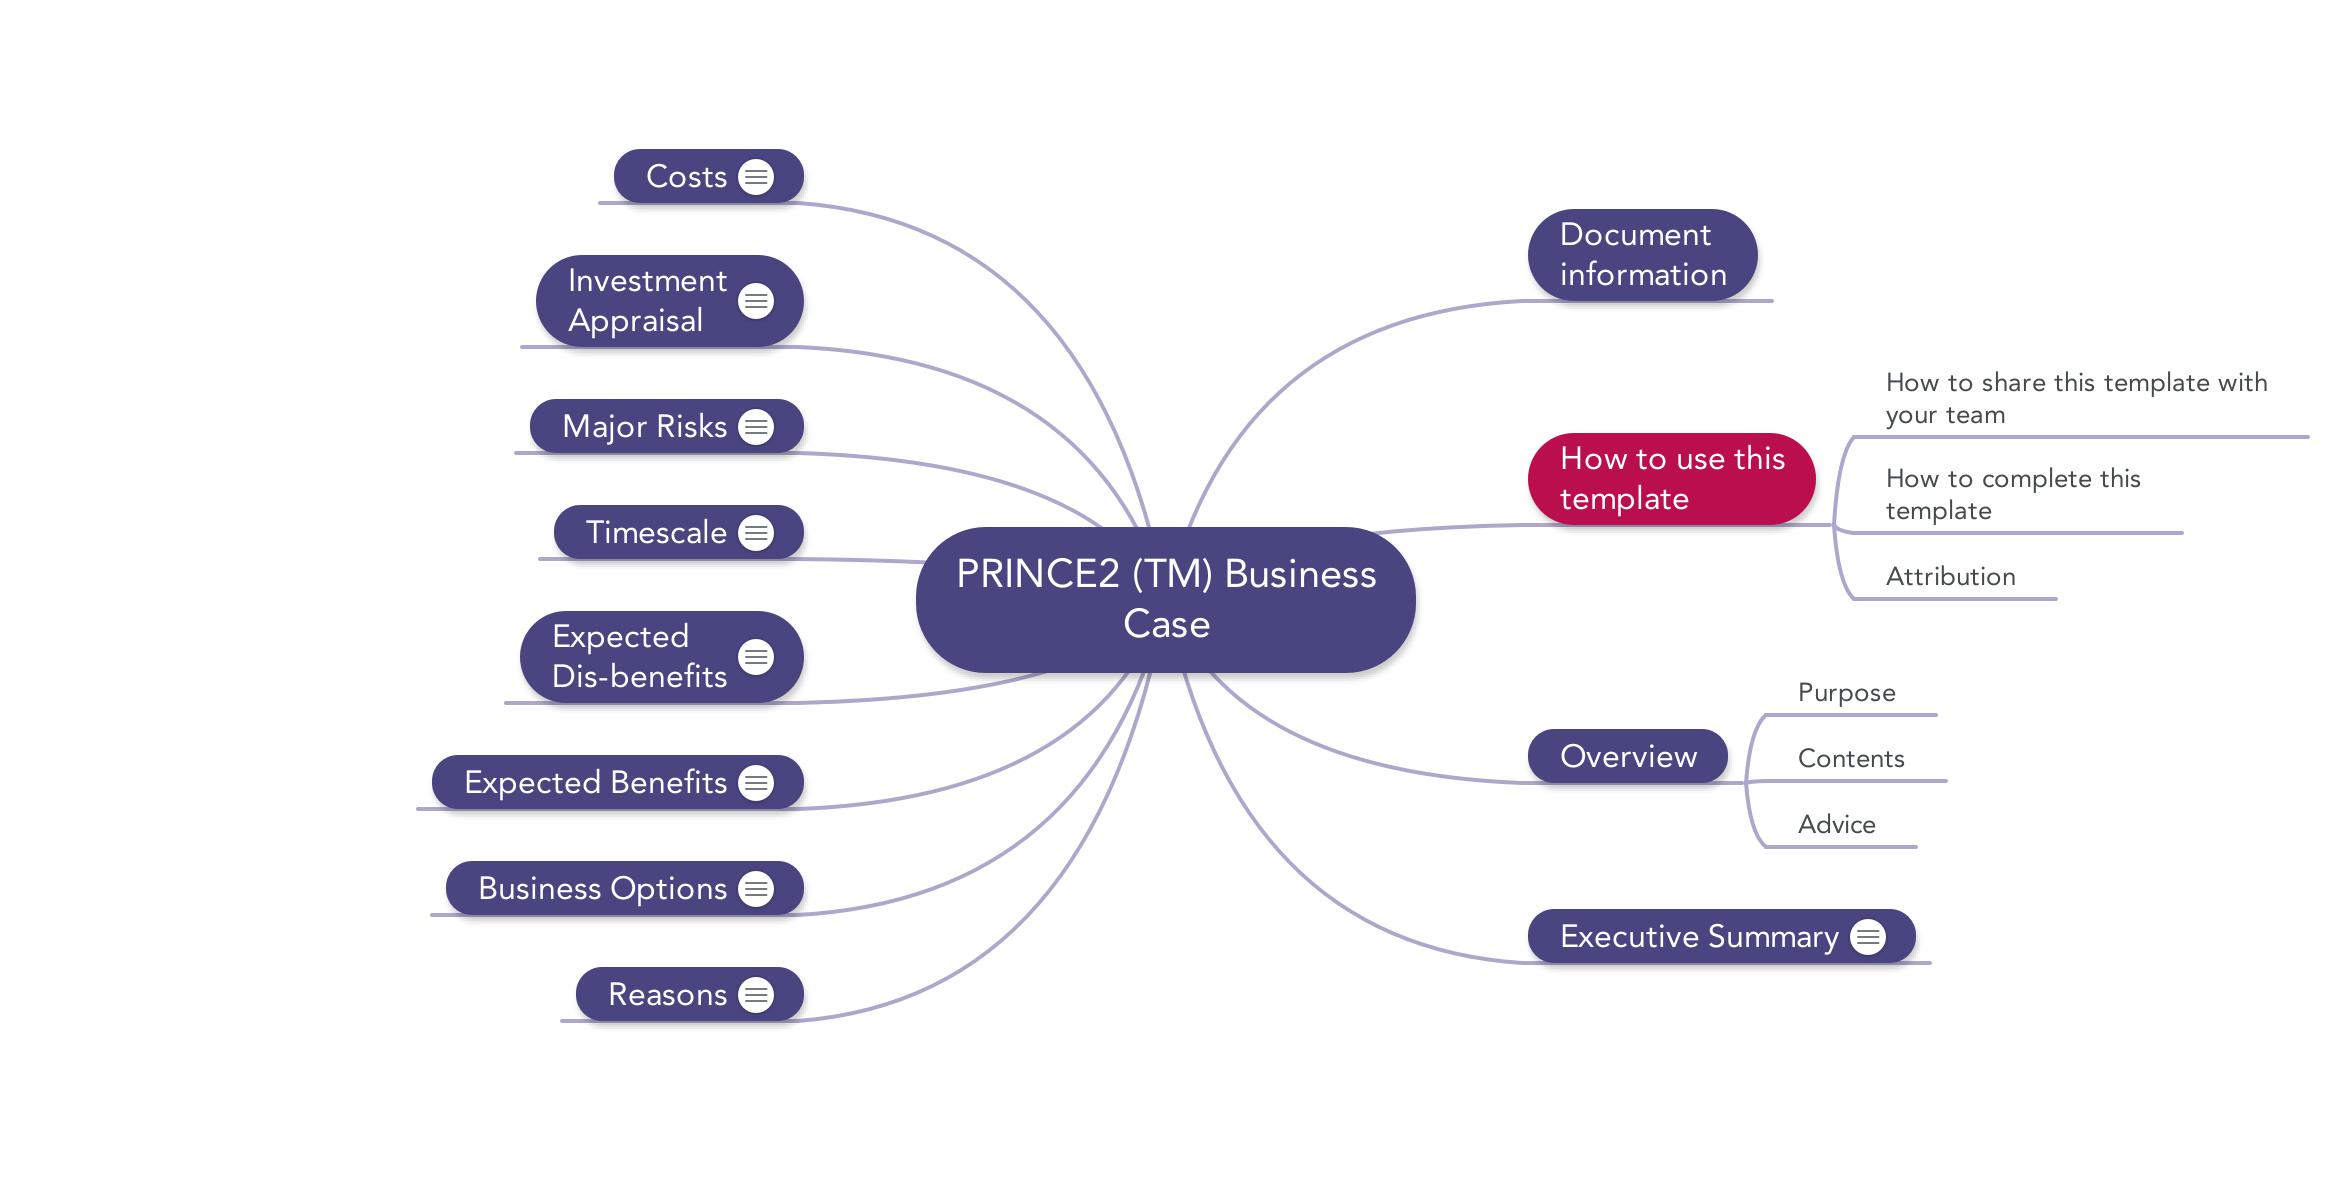 Prince2 business case download template prince2 business case cheaphphosting Image collections